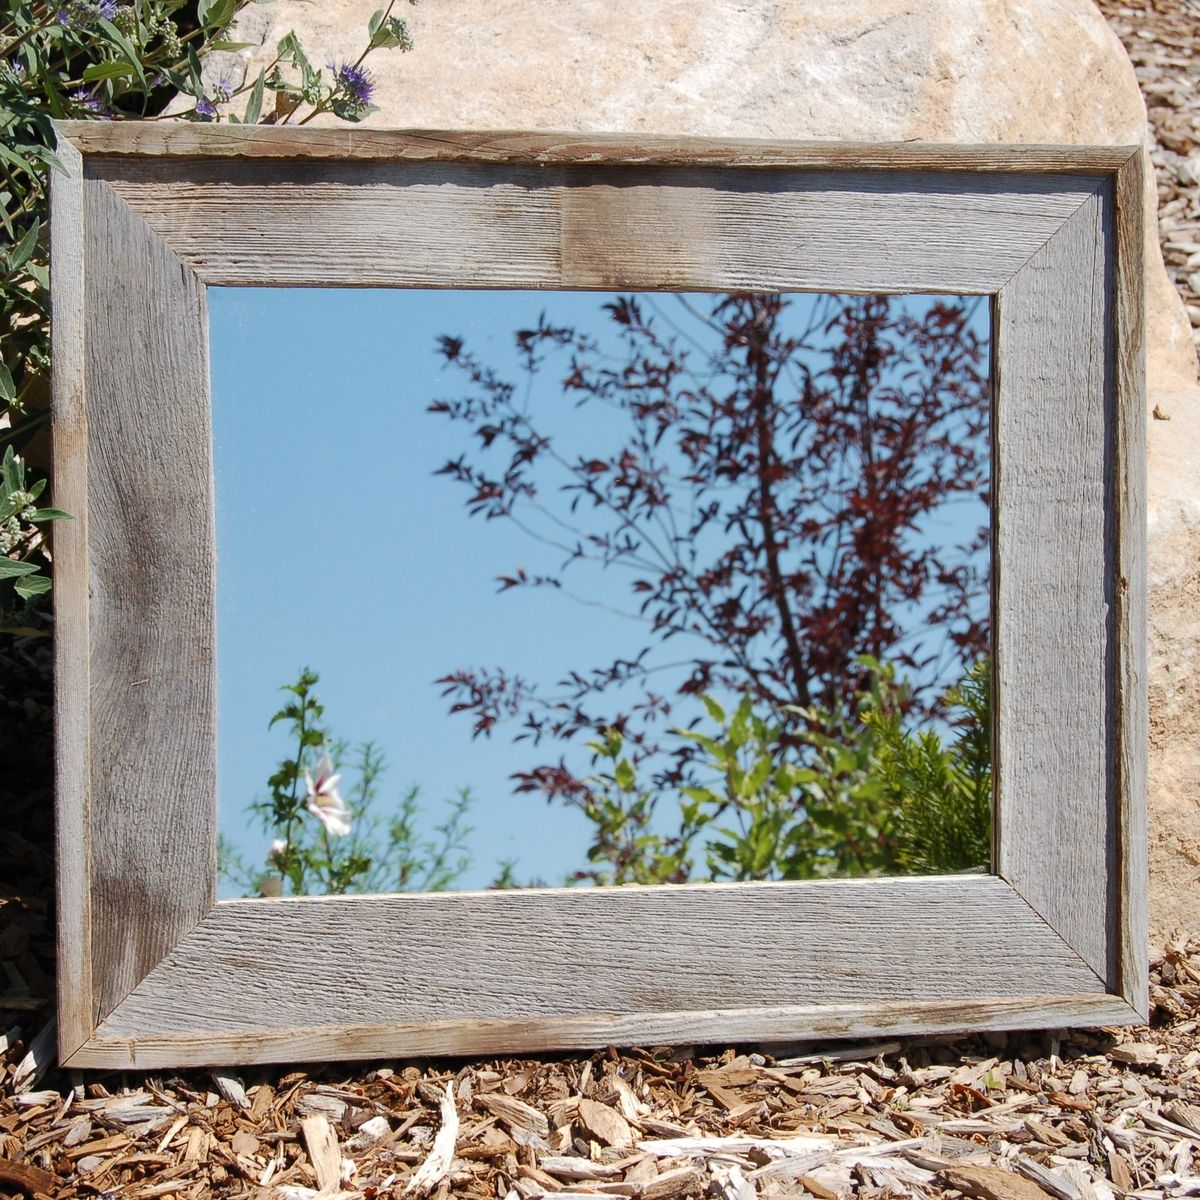 Handmade Barnwood Mirror - Lighthouse Style Rustic Wood by My ...